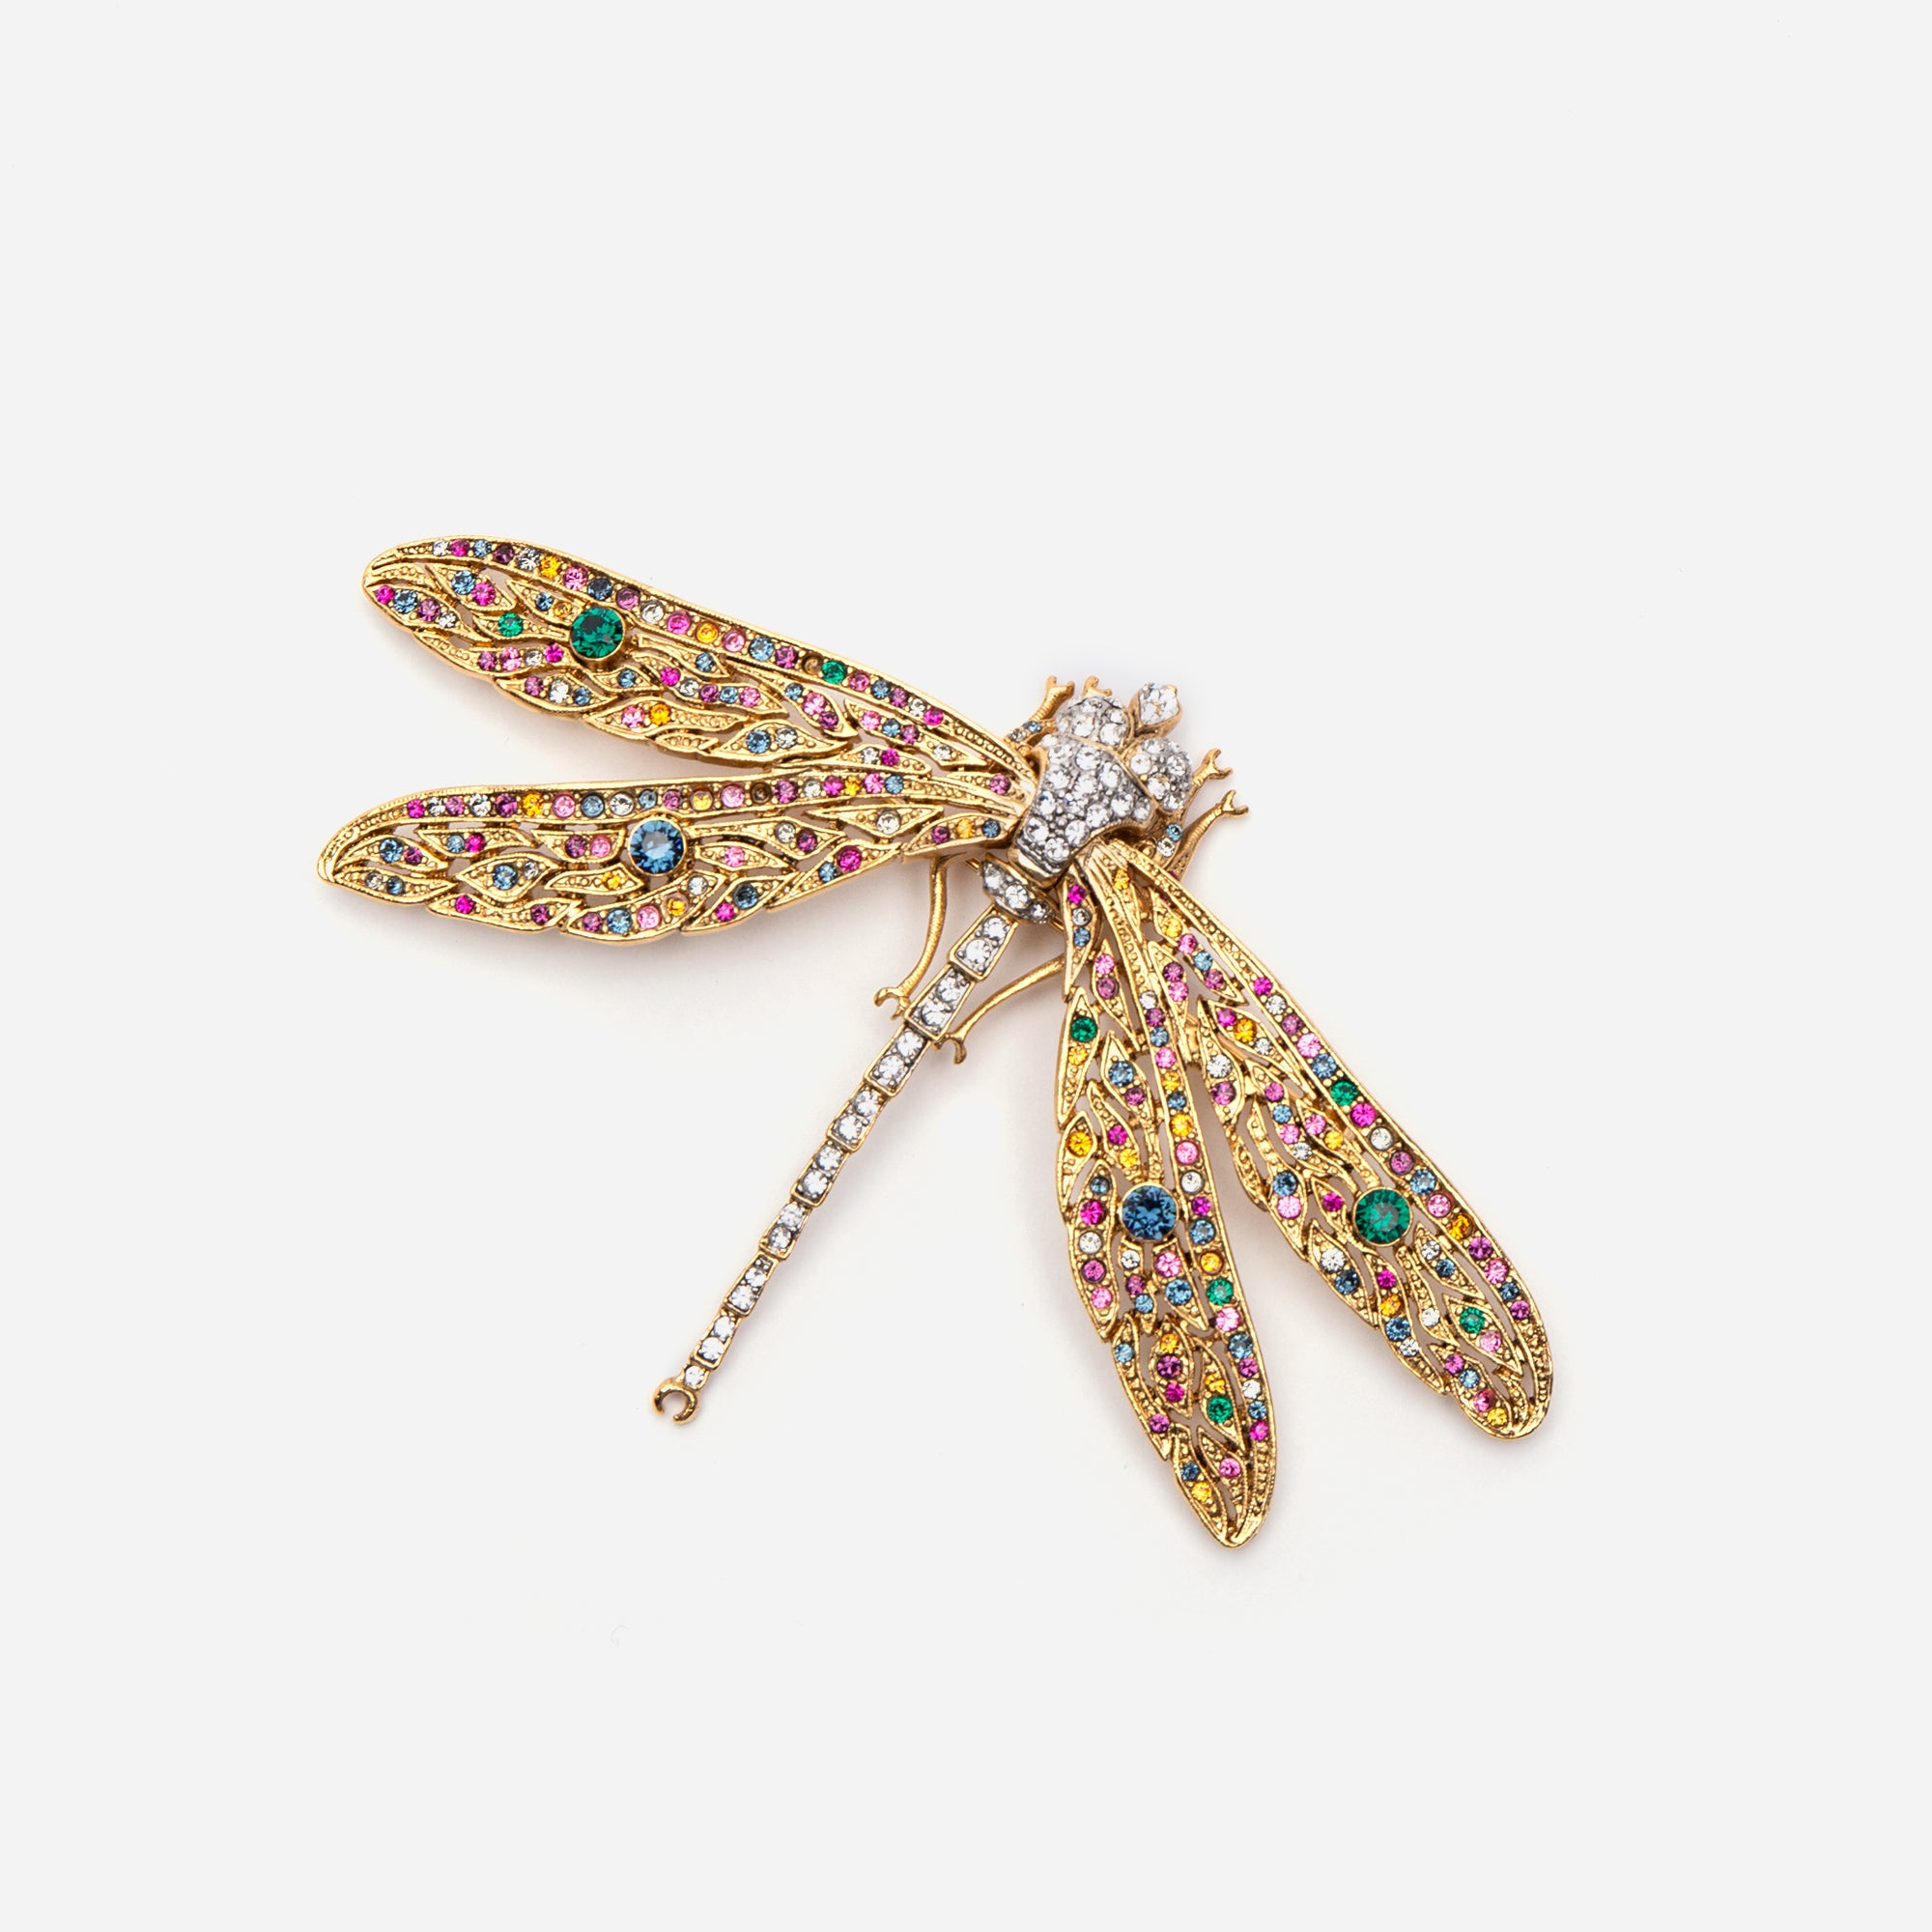 Fiesta Dragonfly Pin - Frances Valentine